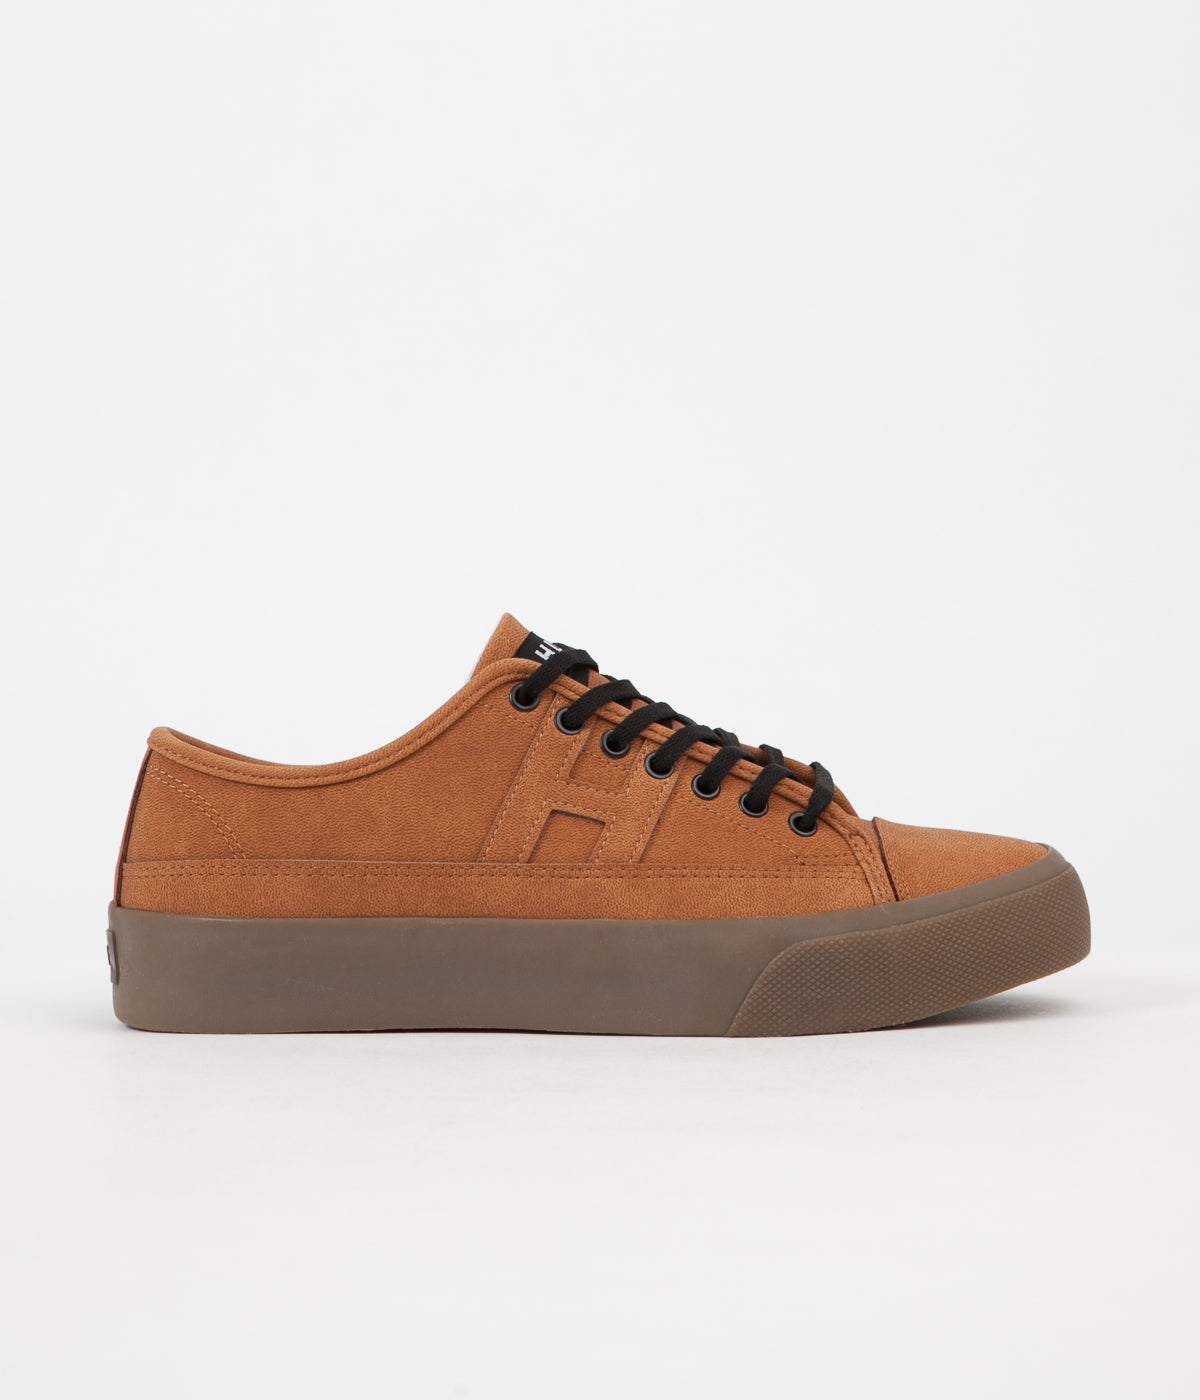 Hupper 2 Lo Trainers In Tan - Tan HUF zevw48L02